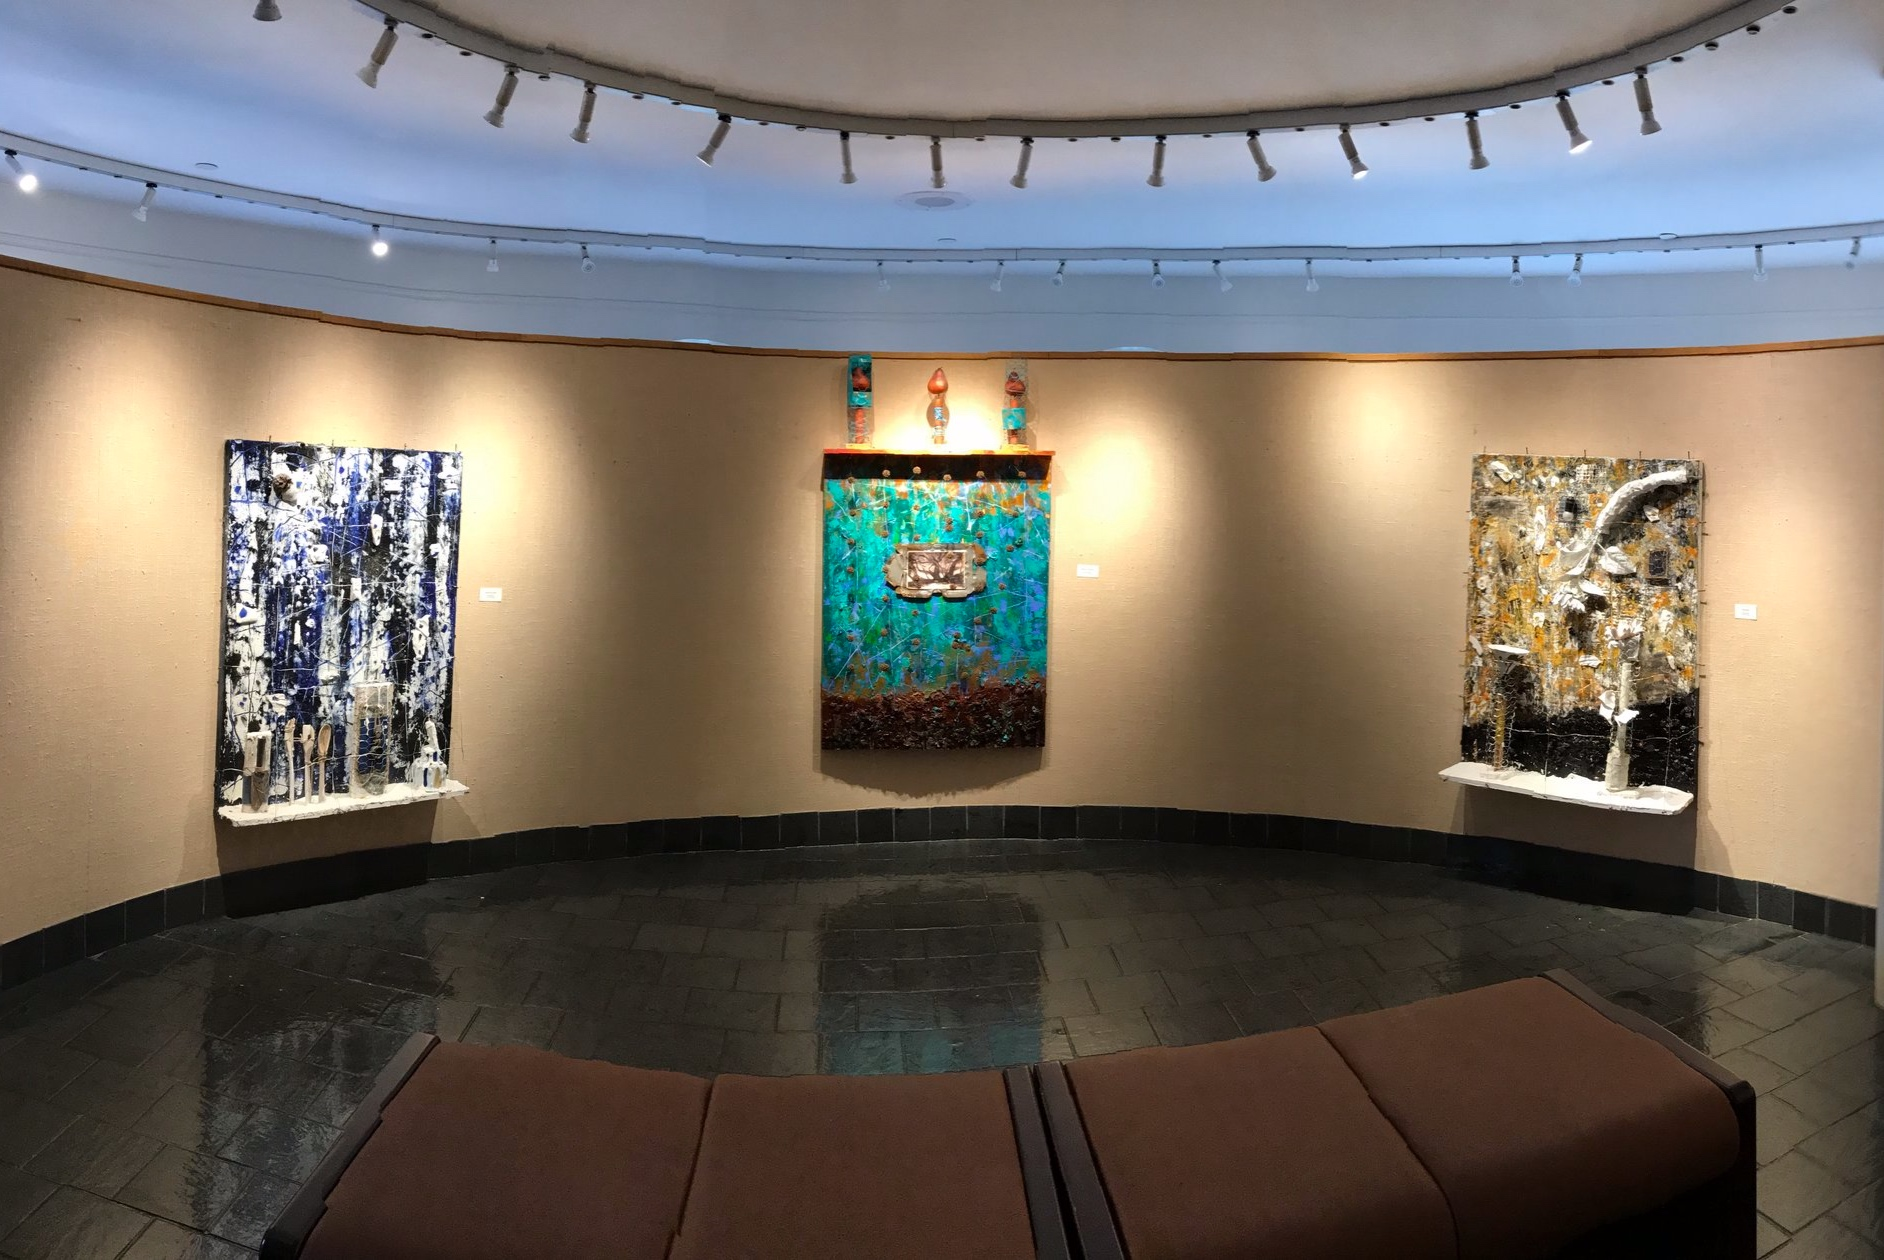 Installation shot at Western New England University, Springfield, MA